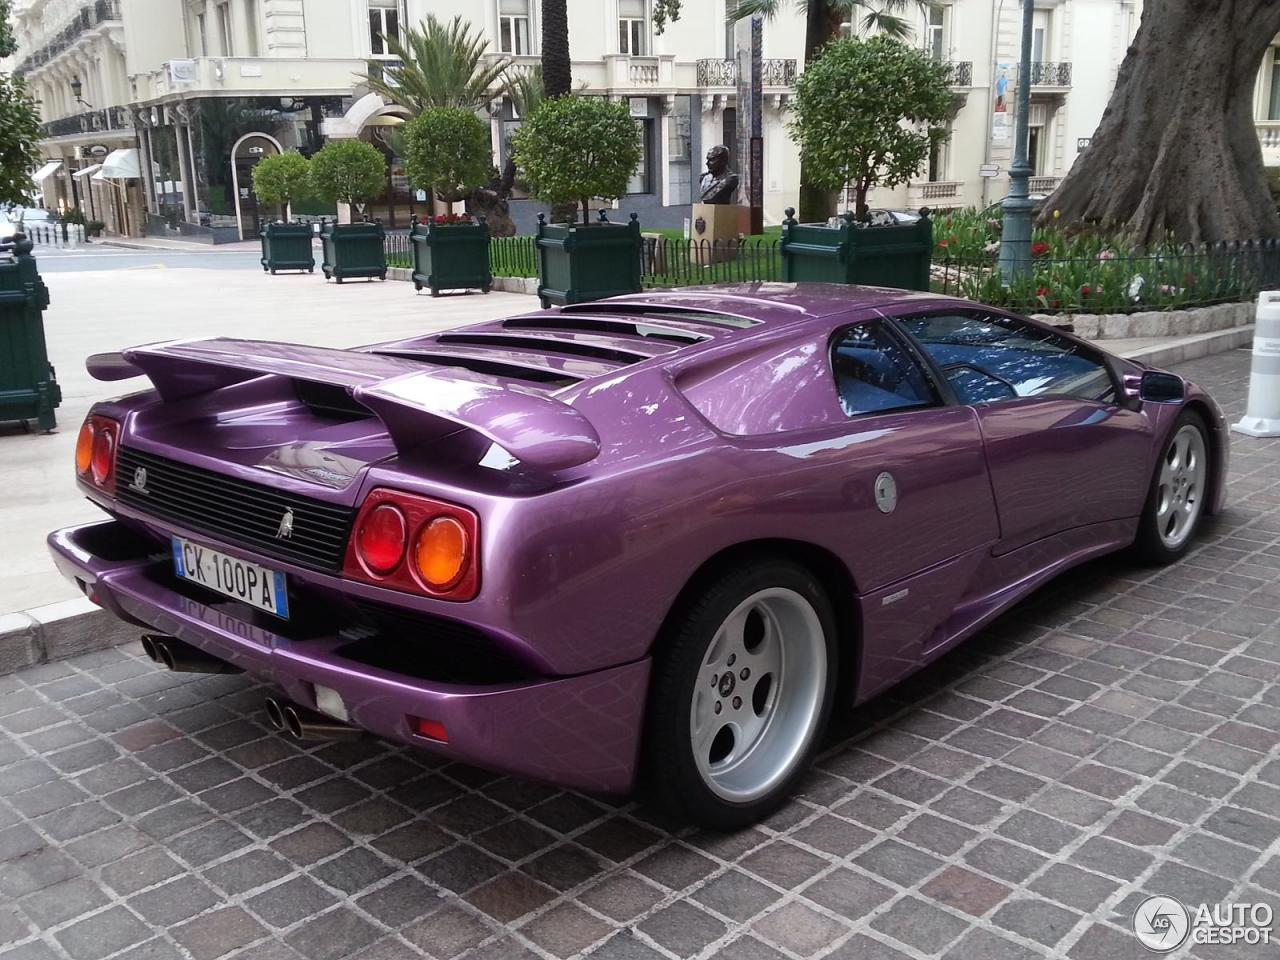 Lamborghini Diablo SE30 - 20 April 2013 - Auspot on purple nissan gt-r 2014, purple dodge durango 2014, purple volkswagen beetle 2014, purple corvette 2014, purple bugatti veyron 2014, purple dodge challenger 2014, purple lotus elise 2014,